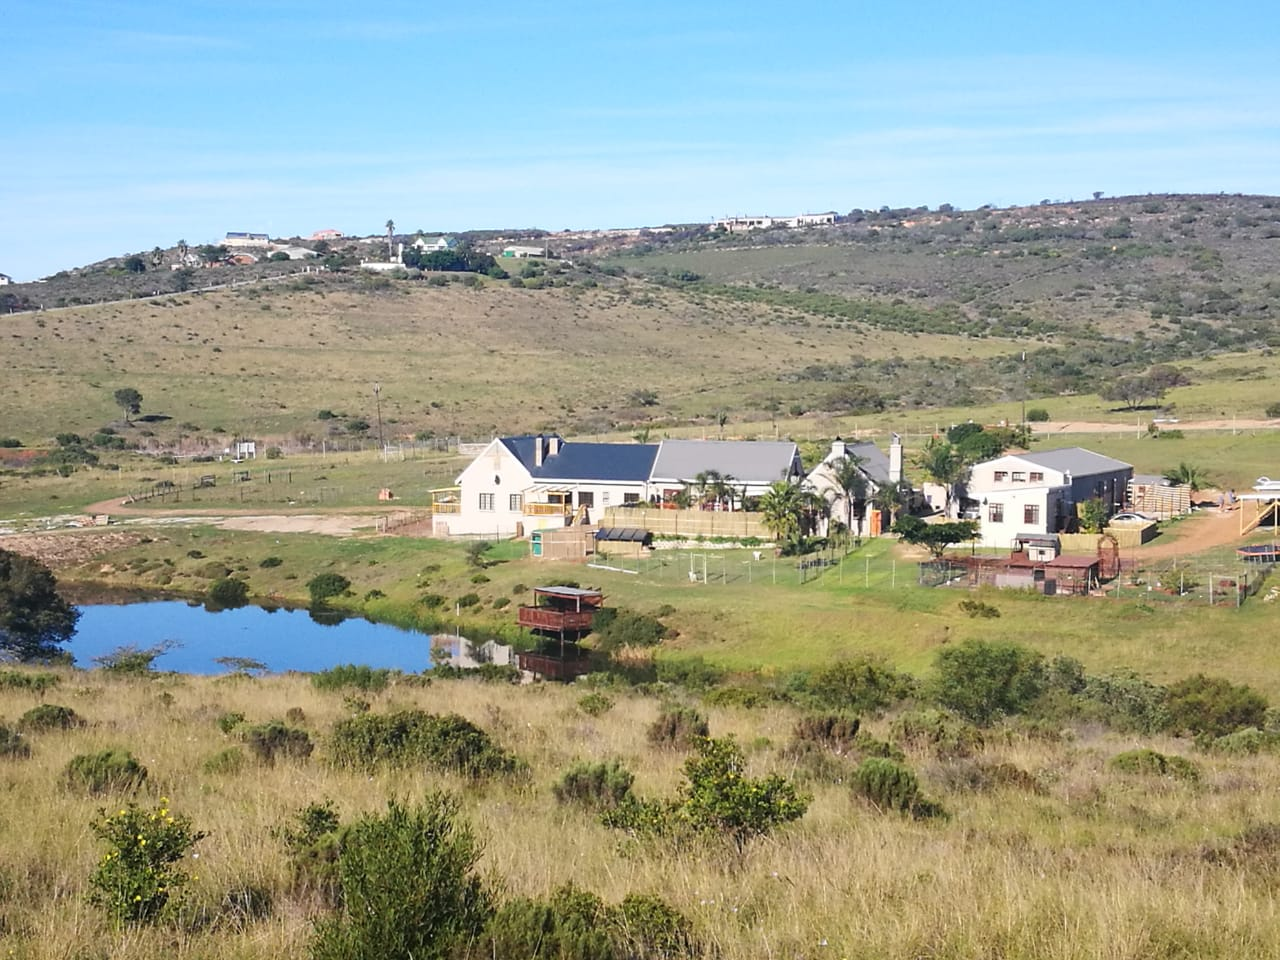 Holiday Rentals & Accommodation - Country Houses - South Africa - Garden Route - Mossel Bay